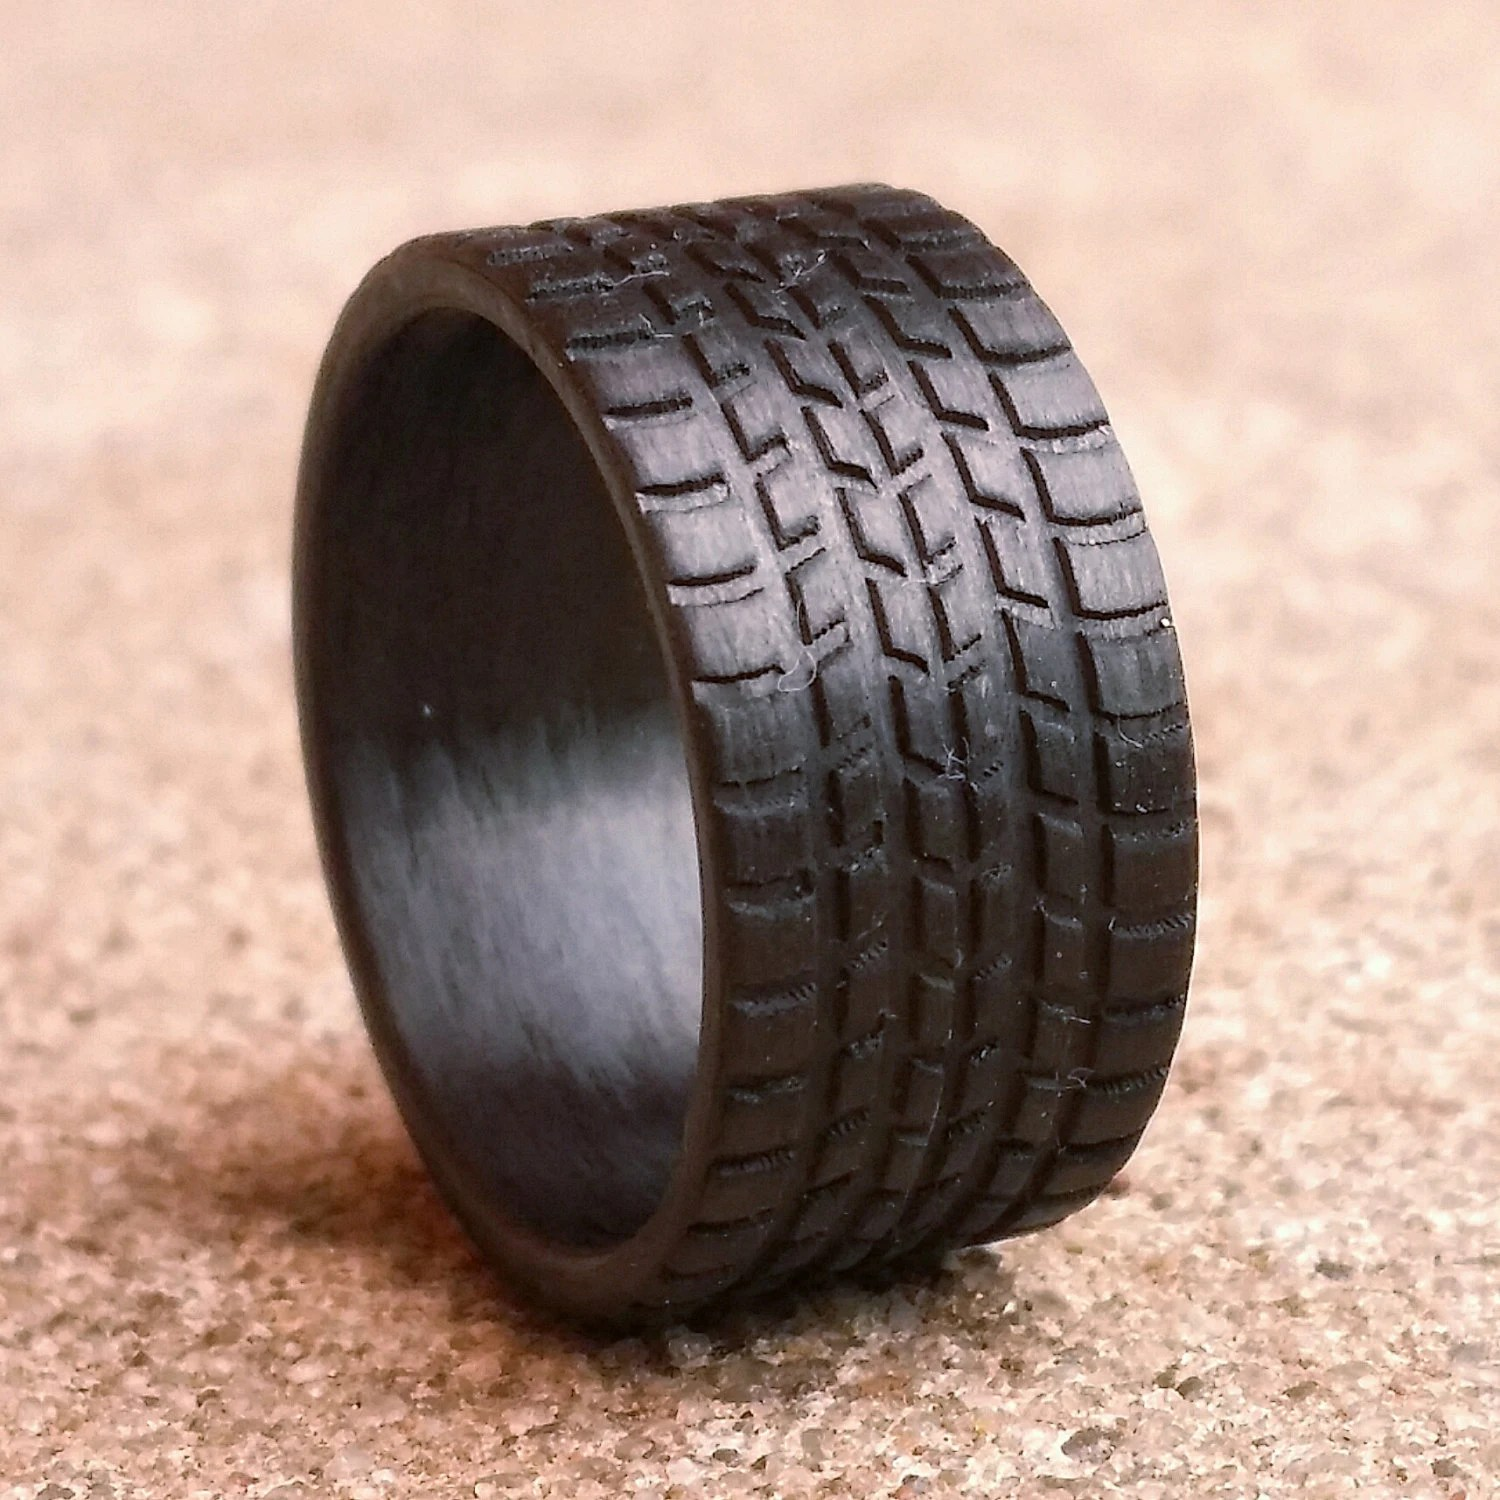 tire tread ring mud tire wedding ring Sport Tread 10mm wide Carbon Fiber Tread Ring Strong Light Weight Wedding Ring Comfort fit Durable Finish